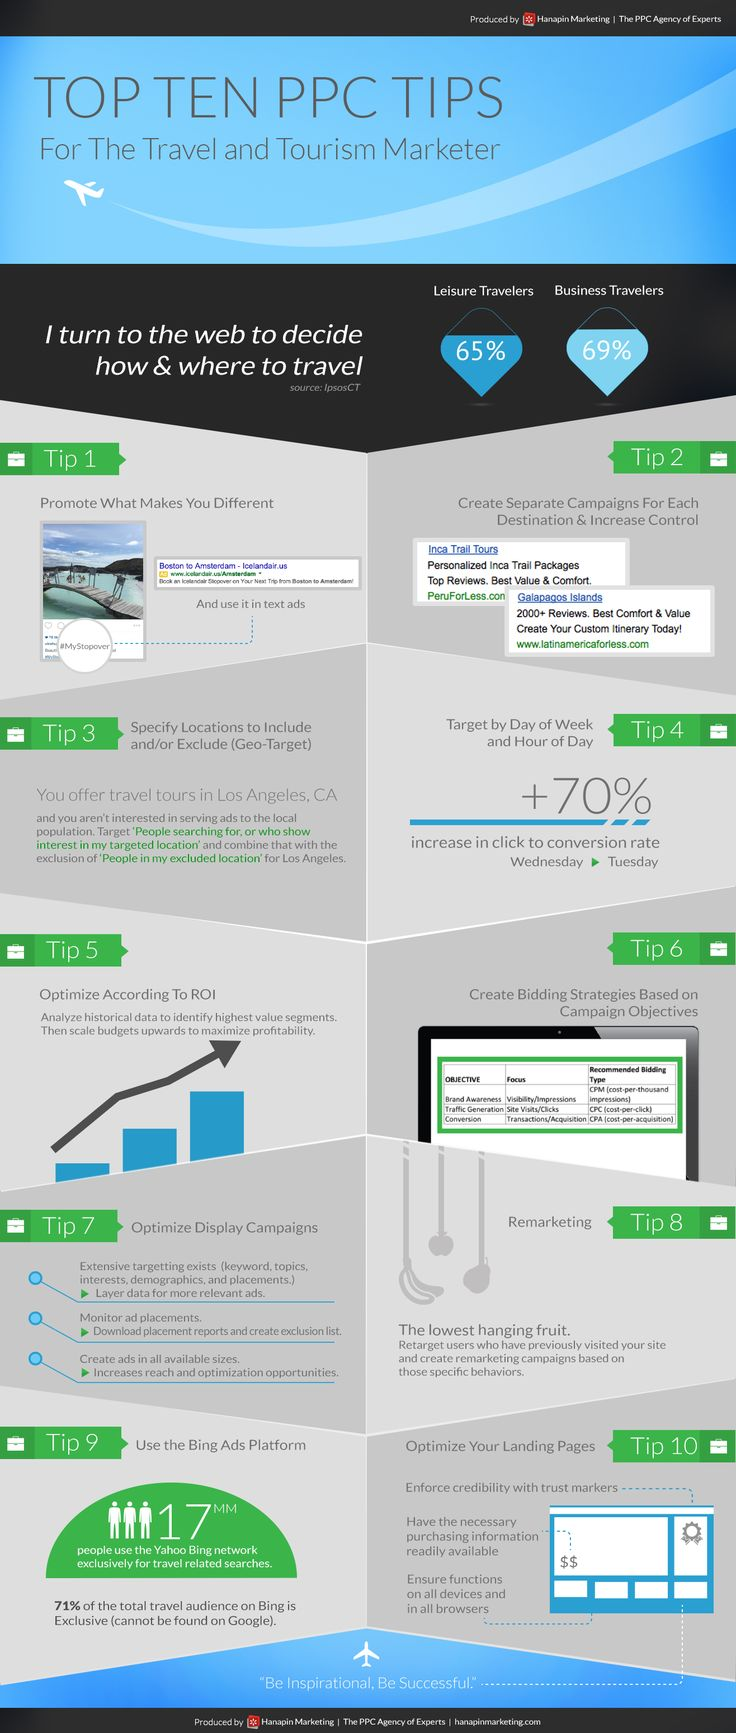 Travel-and-Tourism-PPC_HanapinMarketing_Infographic(1)